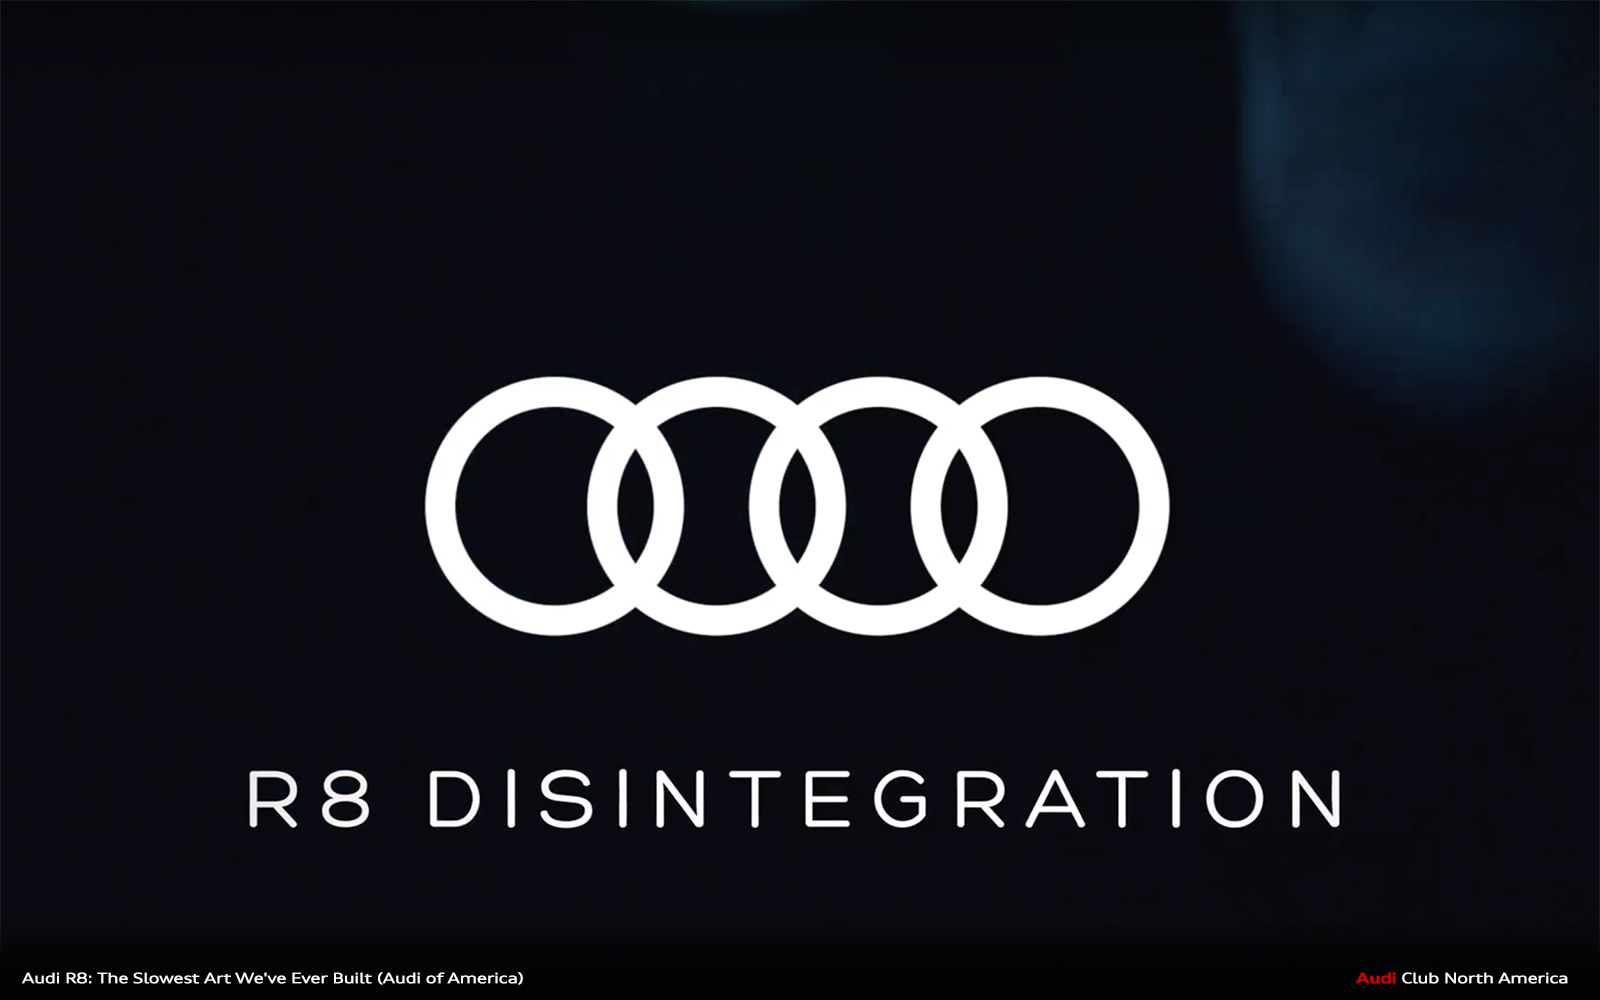 How Do You Celebrate 10 Years of the V10? By Disintegrating an R8 V10